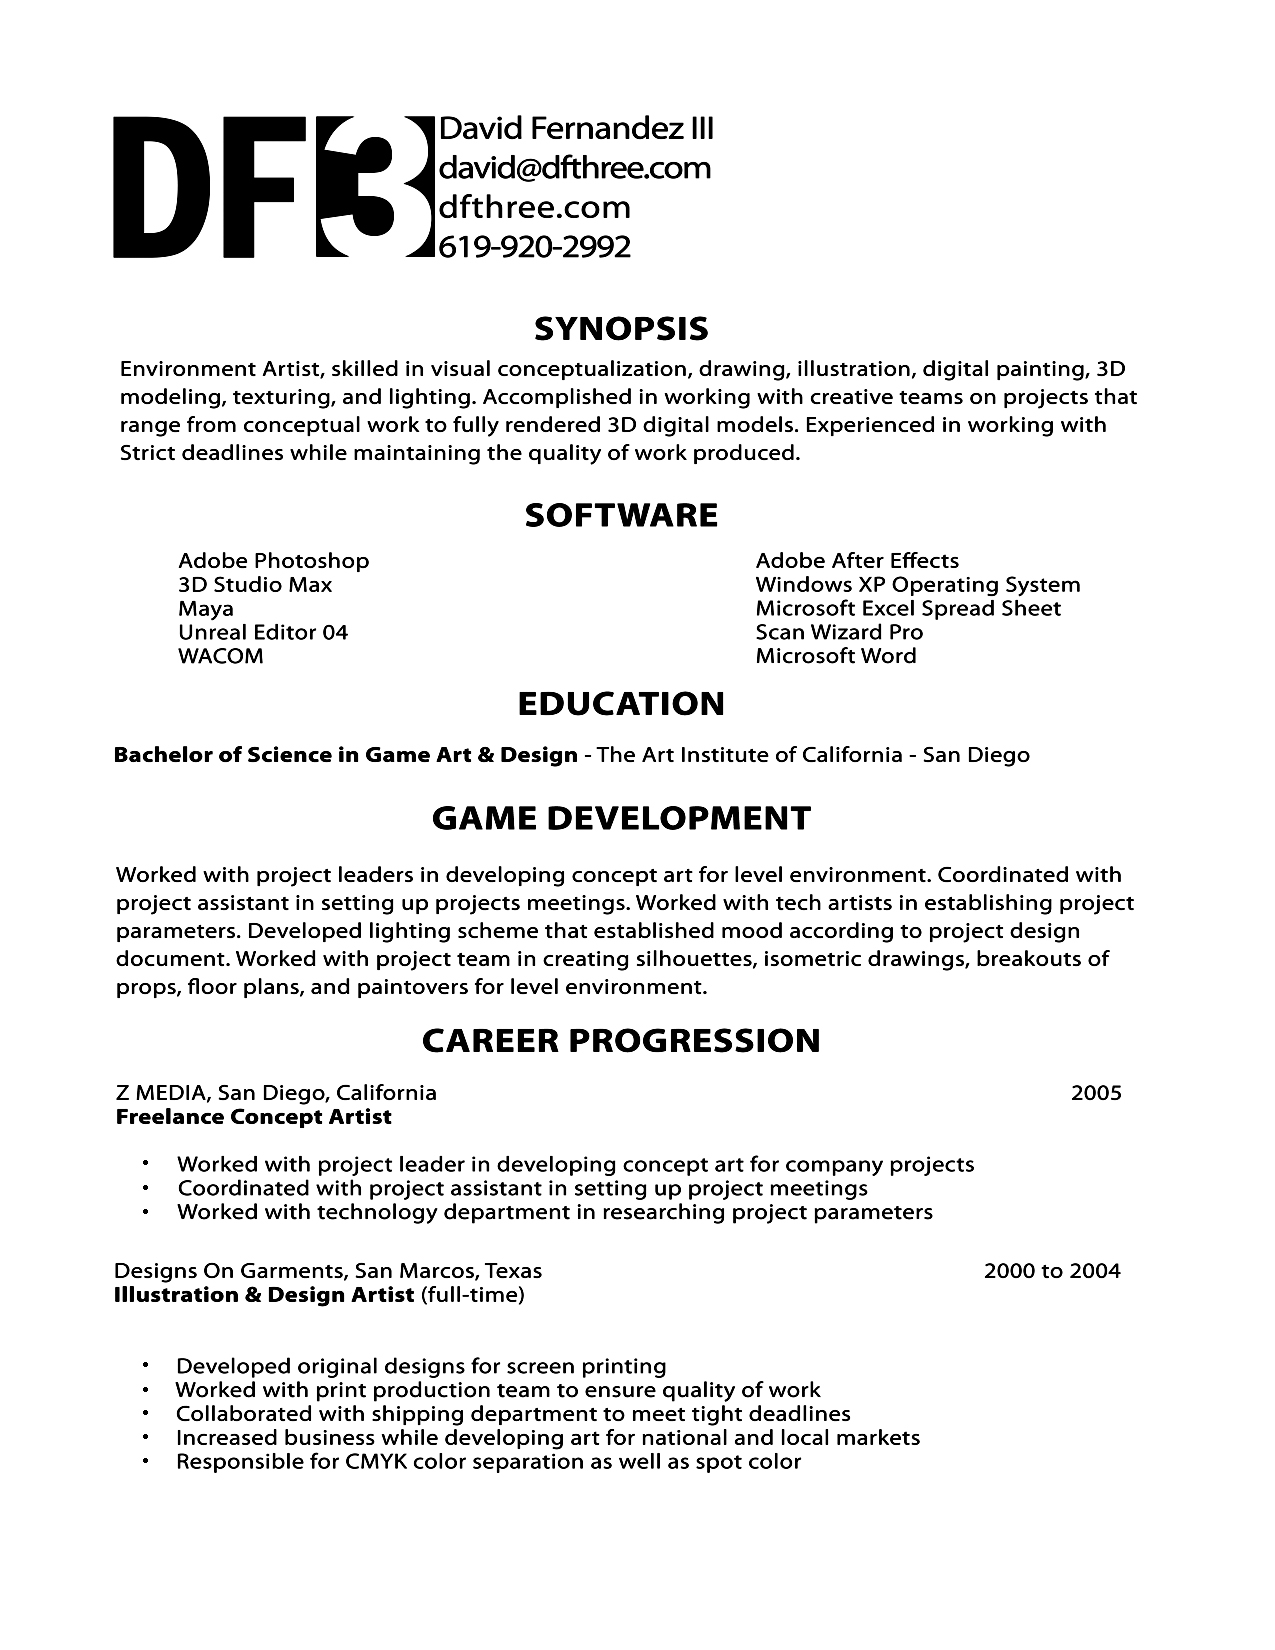 Opposenewapstandardsus  Gorgeous Game Developer Resume Game Tester Resume Sample Game Tester  With Engaging Better Jobs Faster With Agreeable Best Format For Resume Also Contract Specialist Resume In Addition What Should I Put On My Resume And  Page Resume As Well As Ideal Resume Additionally Microsoft Word Resume Template  From Kelseymarieco With Opposenewapstandardsus  Engaging Game Developer Resume Game Tester Resume Sample Game Tester  With Agreeable Better Jobs Faster And Gorgeous Best Format For Resume Also Contract Specialist Resume In Addition What Should I Put On My Resume From Kelseymarieco